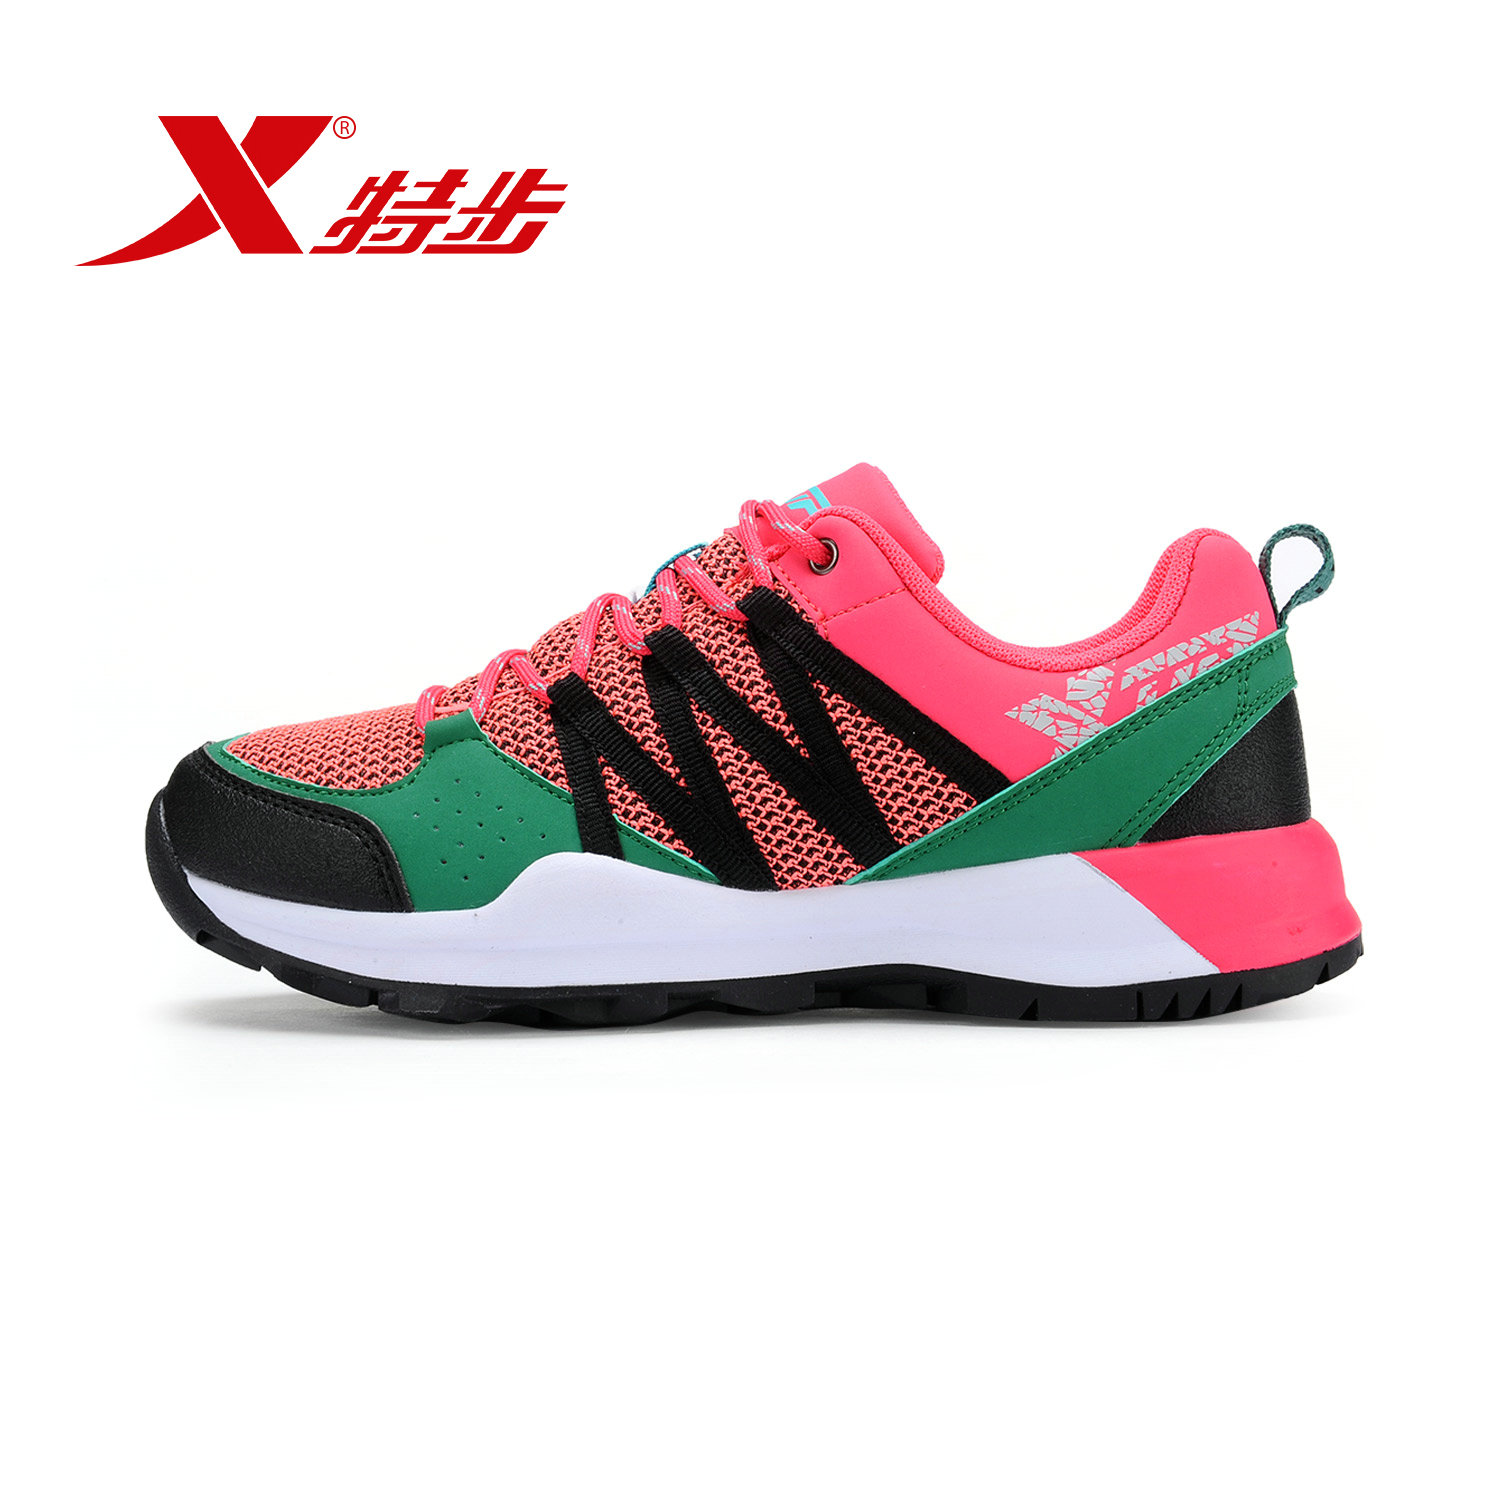 Xtep shoes breathable summer running shoes 2016 cross country running shoes cushioning running shoes mesh shoes comfortable shoes women shoes rest assured amoy